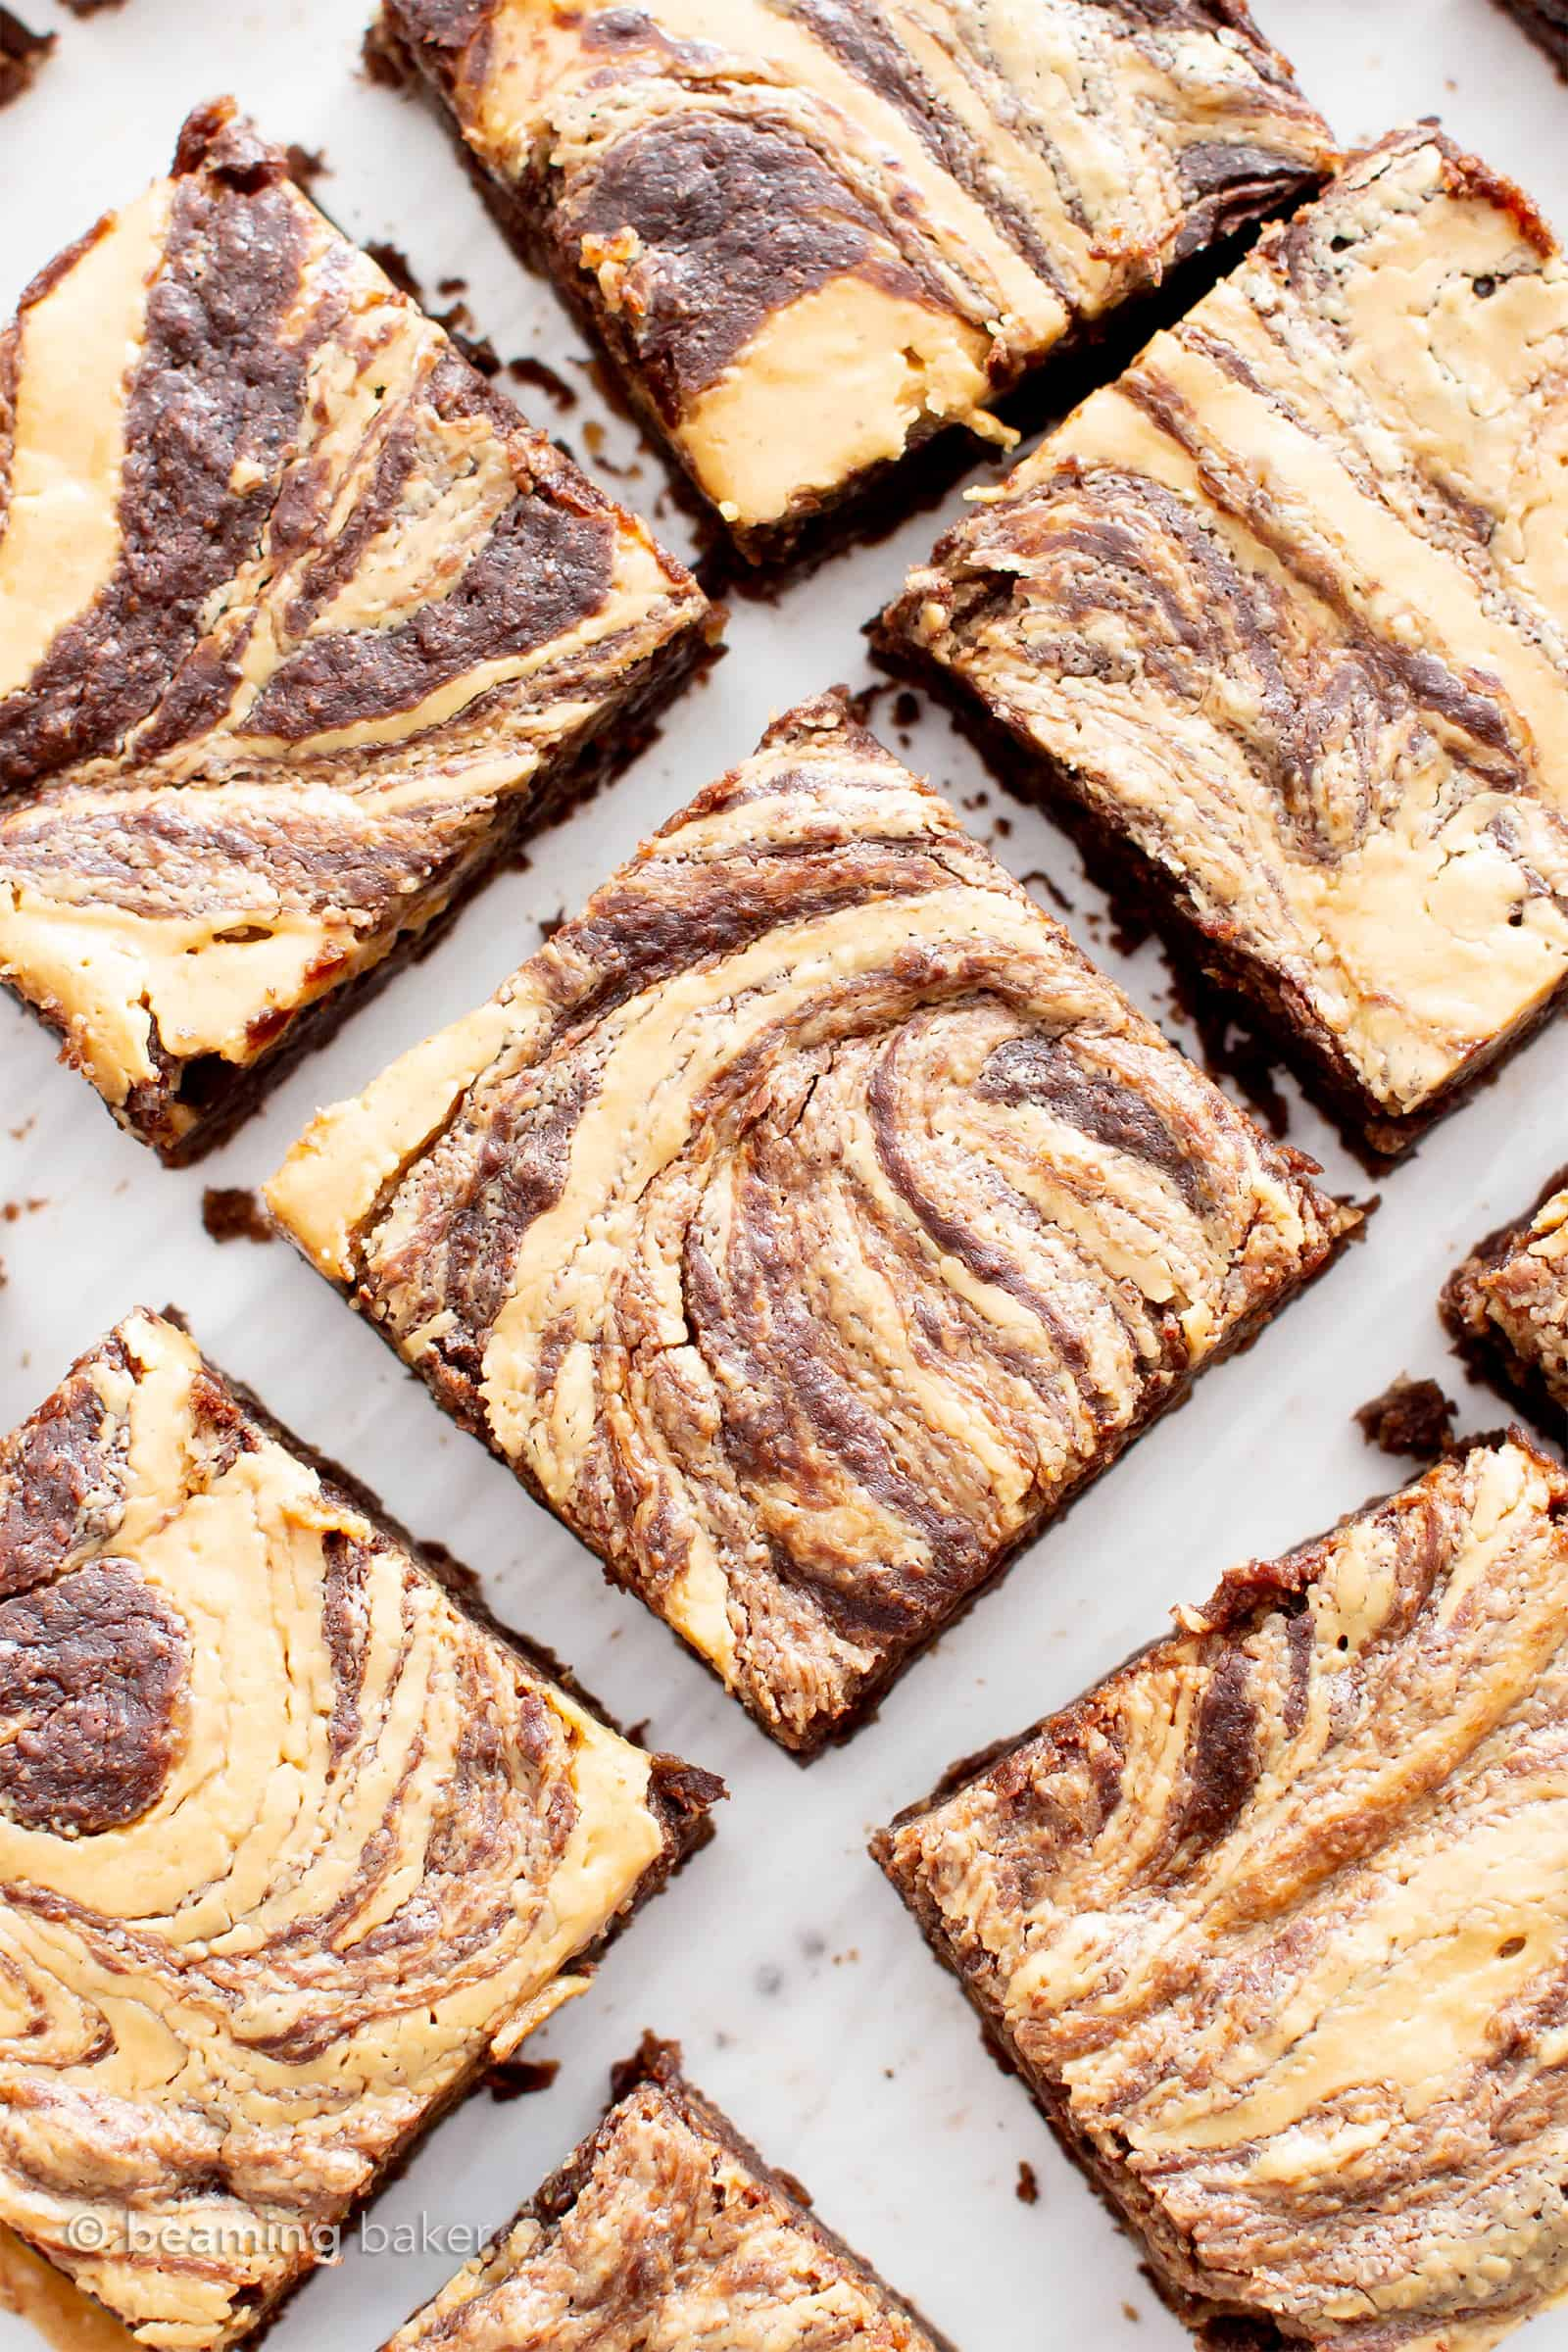 Fudgy Vegan Peanut Butter Swirl Brownies (Gluten Free): this vegan gluten free brownies recipe is made from scratch & easy! It's the fudgiest chocolate peanut butter swirl brownies ever—with thick ribbons of peanut butter and rich, moist brownie flavor! #Vegan #Brownies #GlutenFree #DairyFree #PeanutButter | Recipe at BeamingBaker.com